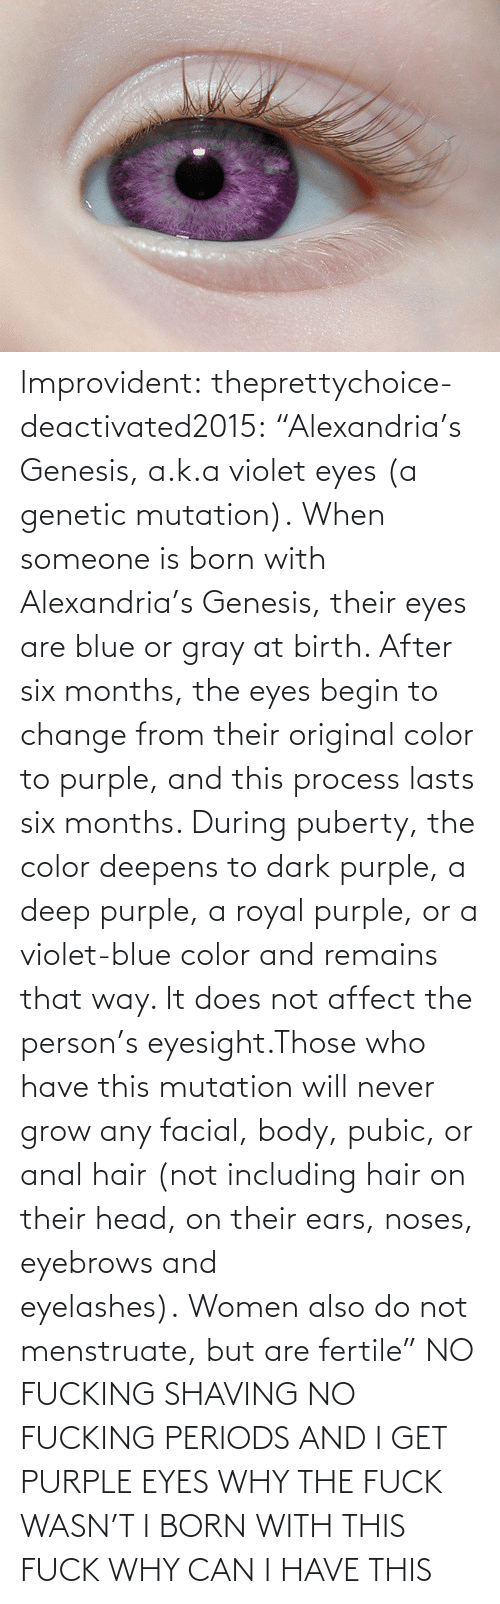 """Never Grow: lmprovident:  theprettychoice-deactivated2015:  """"Alexandria's Genesis, a.k.a violet eyes (a genetic mutation). When someone is born with Alexandria's Genesis, their eyes are blue or gray at birth. After six months, the eyes begin to change from their original color to purple, and this process lasts six months. During puberty, the color deepens to dark purple, a deep purple, a royal purple, or a violet-blue color and remains that way. It does not affect the person's eyesight.Those who have this mutationwill never grow any facial, body, pubic, or anal hair (not including hair on their head, on their ears, noses, eyebrows and eyelashes).Women also do not menstruate, but are fertile""""  NO FUCKINGSHAVING NO FUCKINGPERIODS AND I GET PURPLE EYES WHY THE FUCK WASN'T I BORN WITH THIS FUCK WHY CAN I HAVE THIS"""